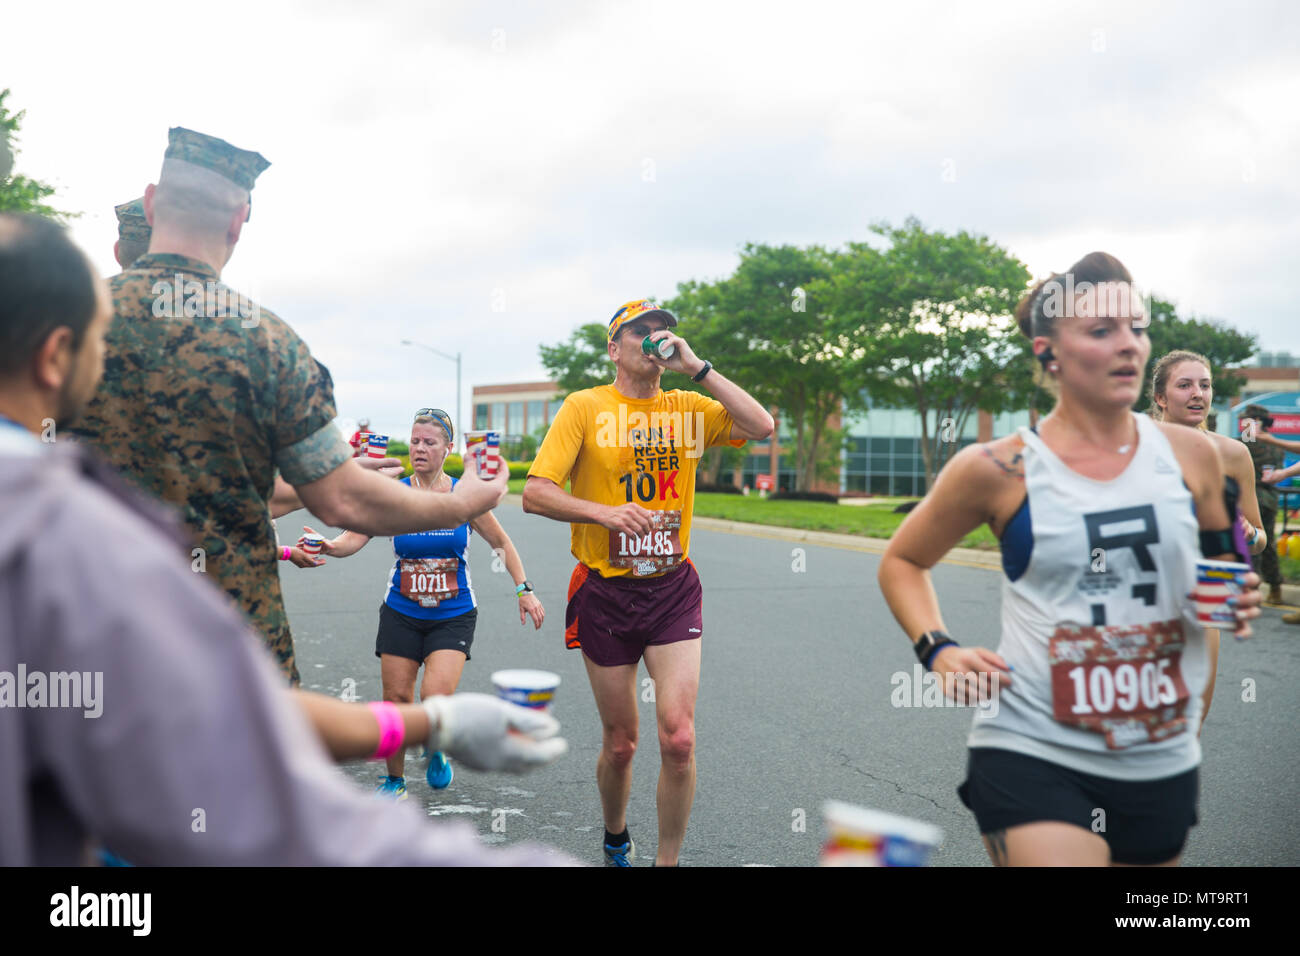 participants of the semper 5ive race of 11th annual marine corps